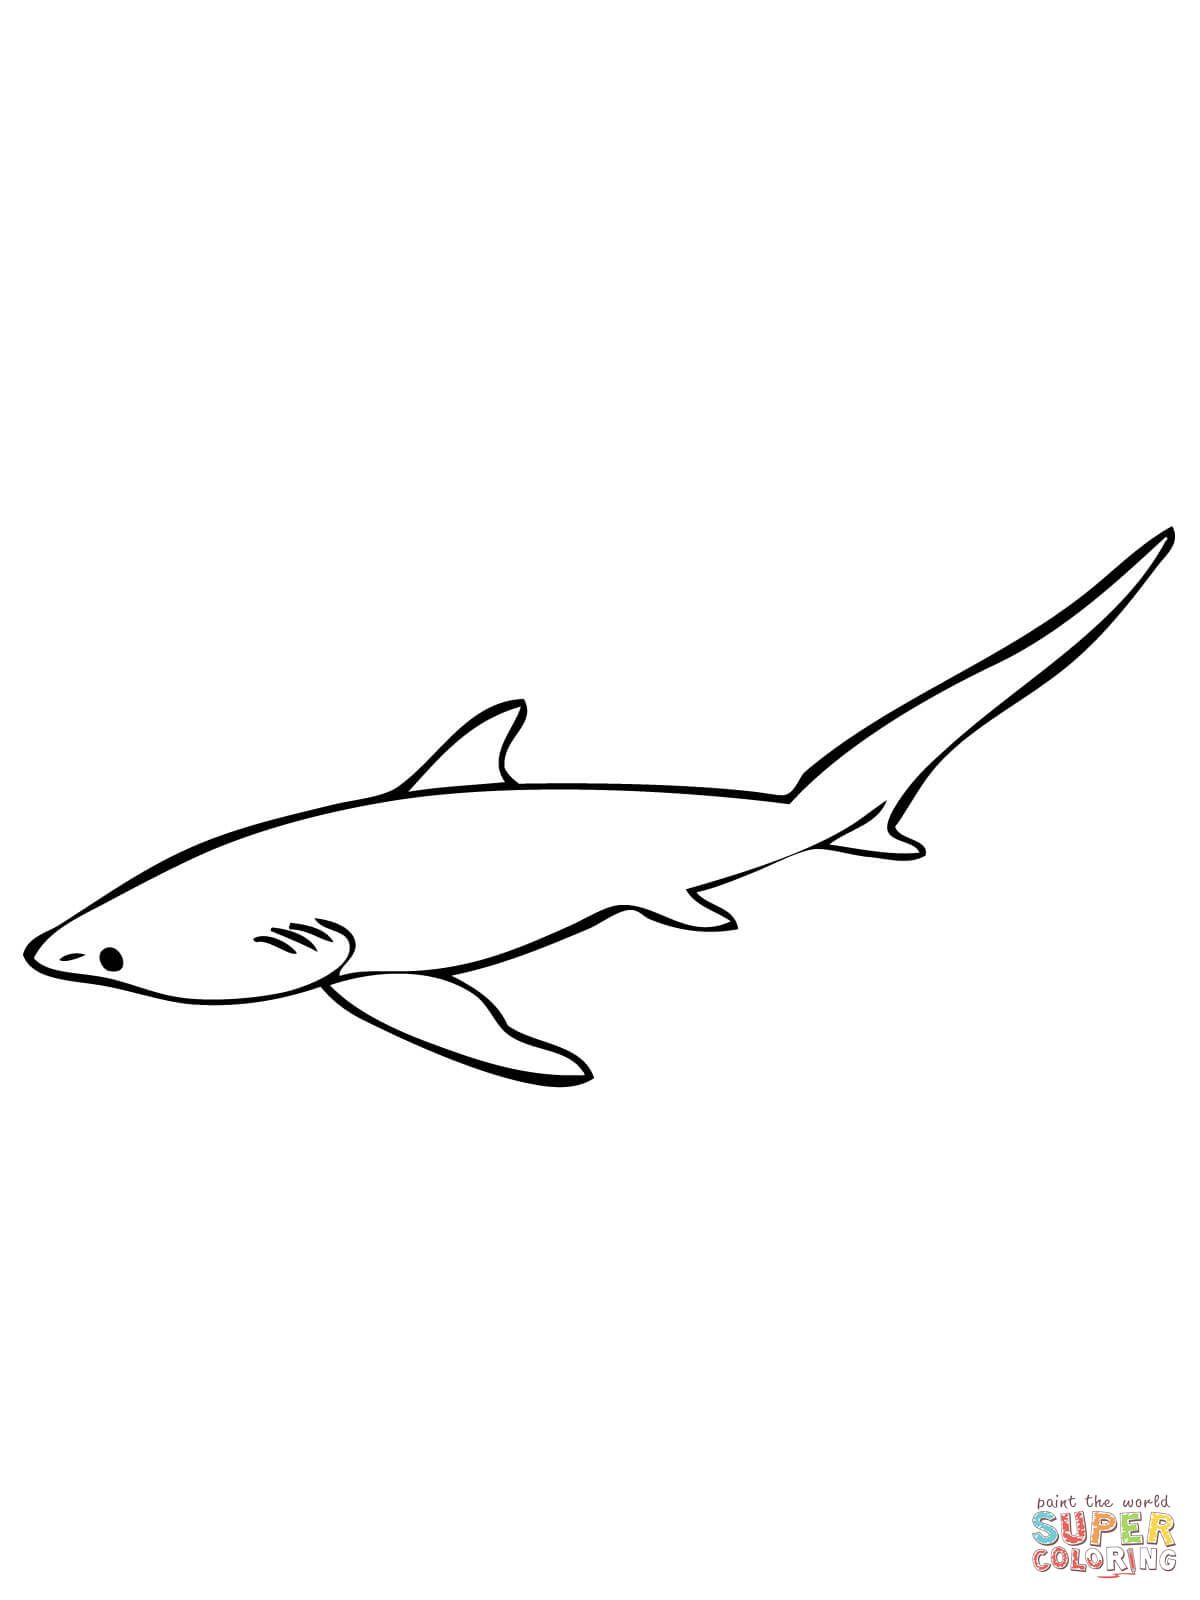 Thresher Shark Or Fox Shark Super Coloring Shark Coloring